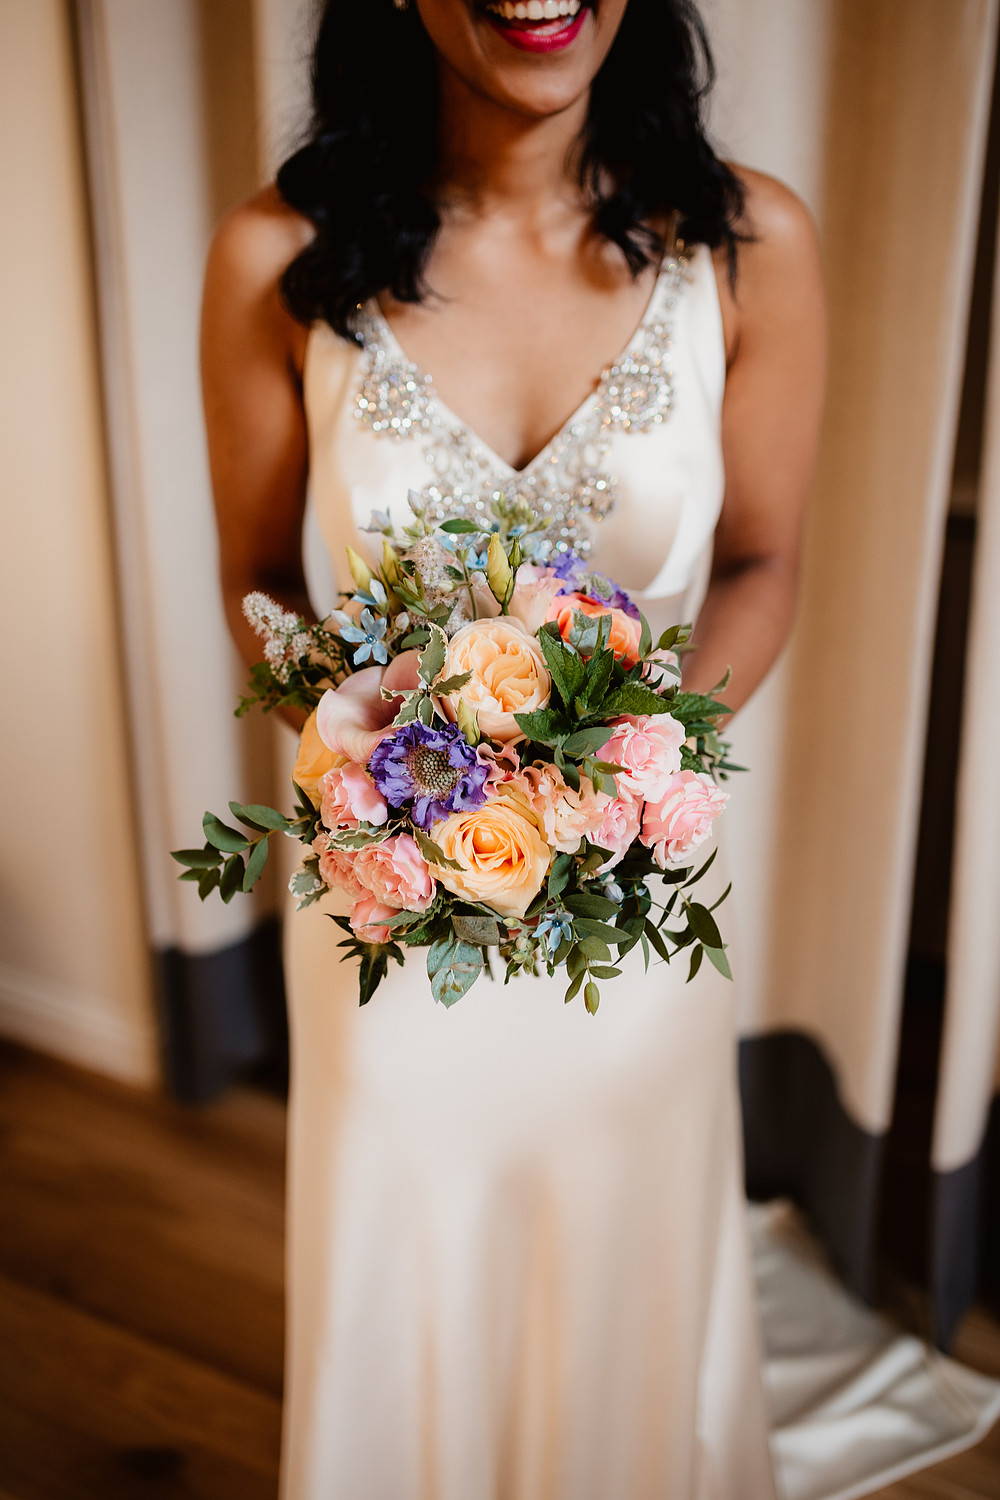 choose natural hand tied wedding bouquets for the wedding 4 - Choose Natural Hand Tied Wedding Bouquets for the Wedding